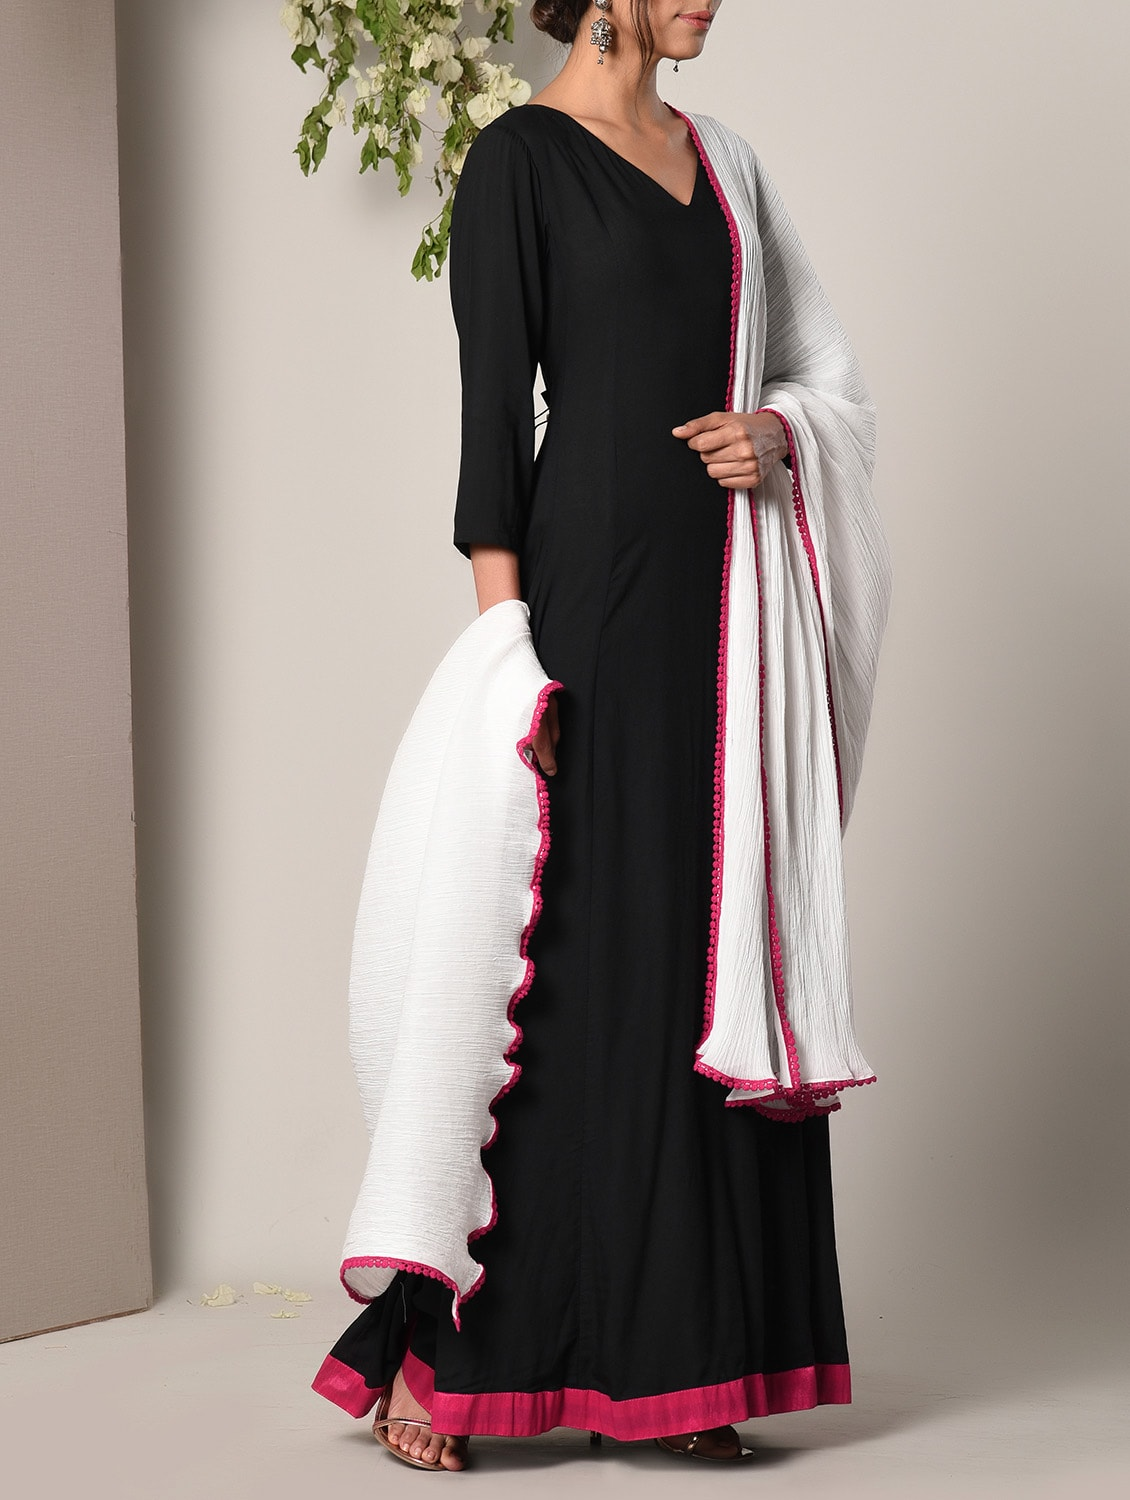 af64ac2fd6 Buy Black Cotton Modal Maxi Dress And Dupatta Set for Women from Truebrowns  for ₹3419 at 10% off